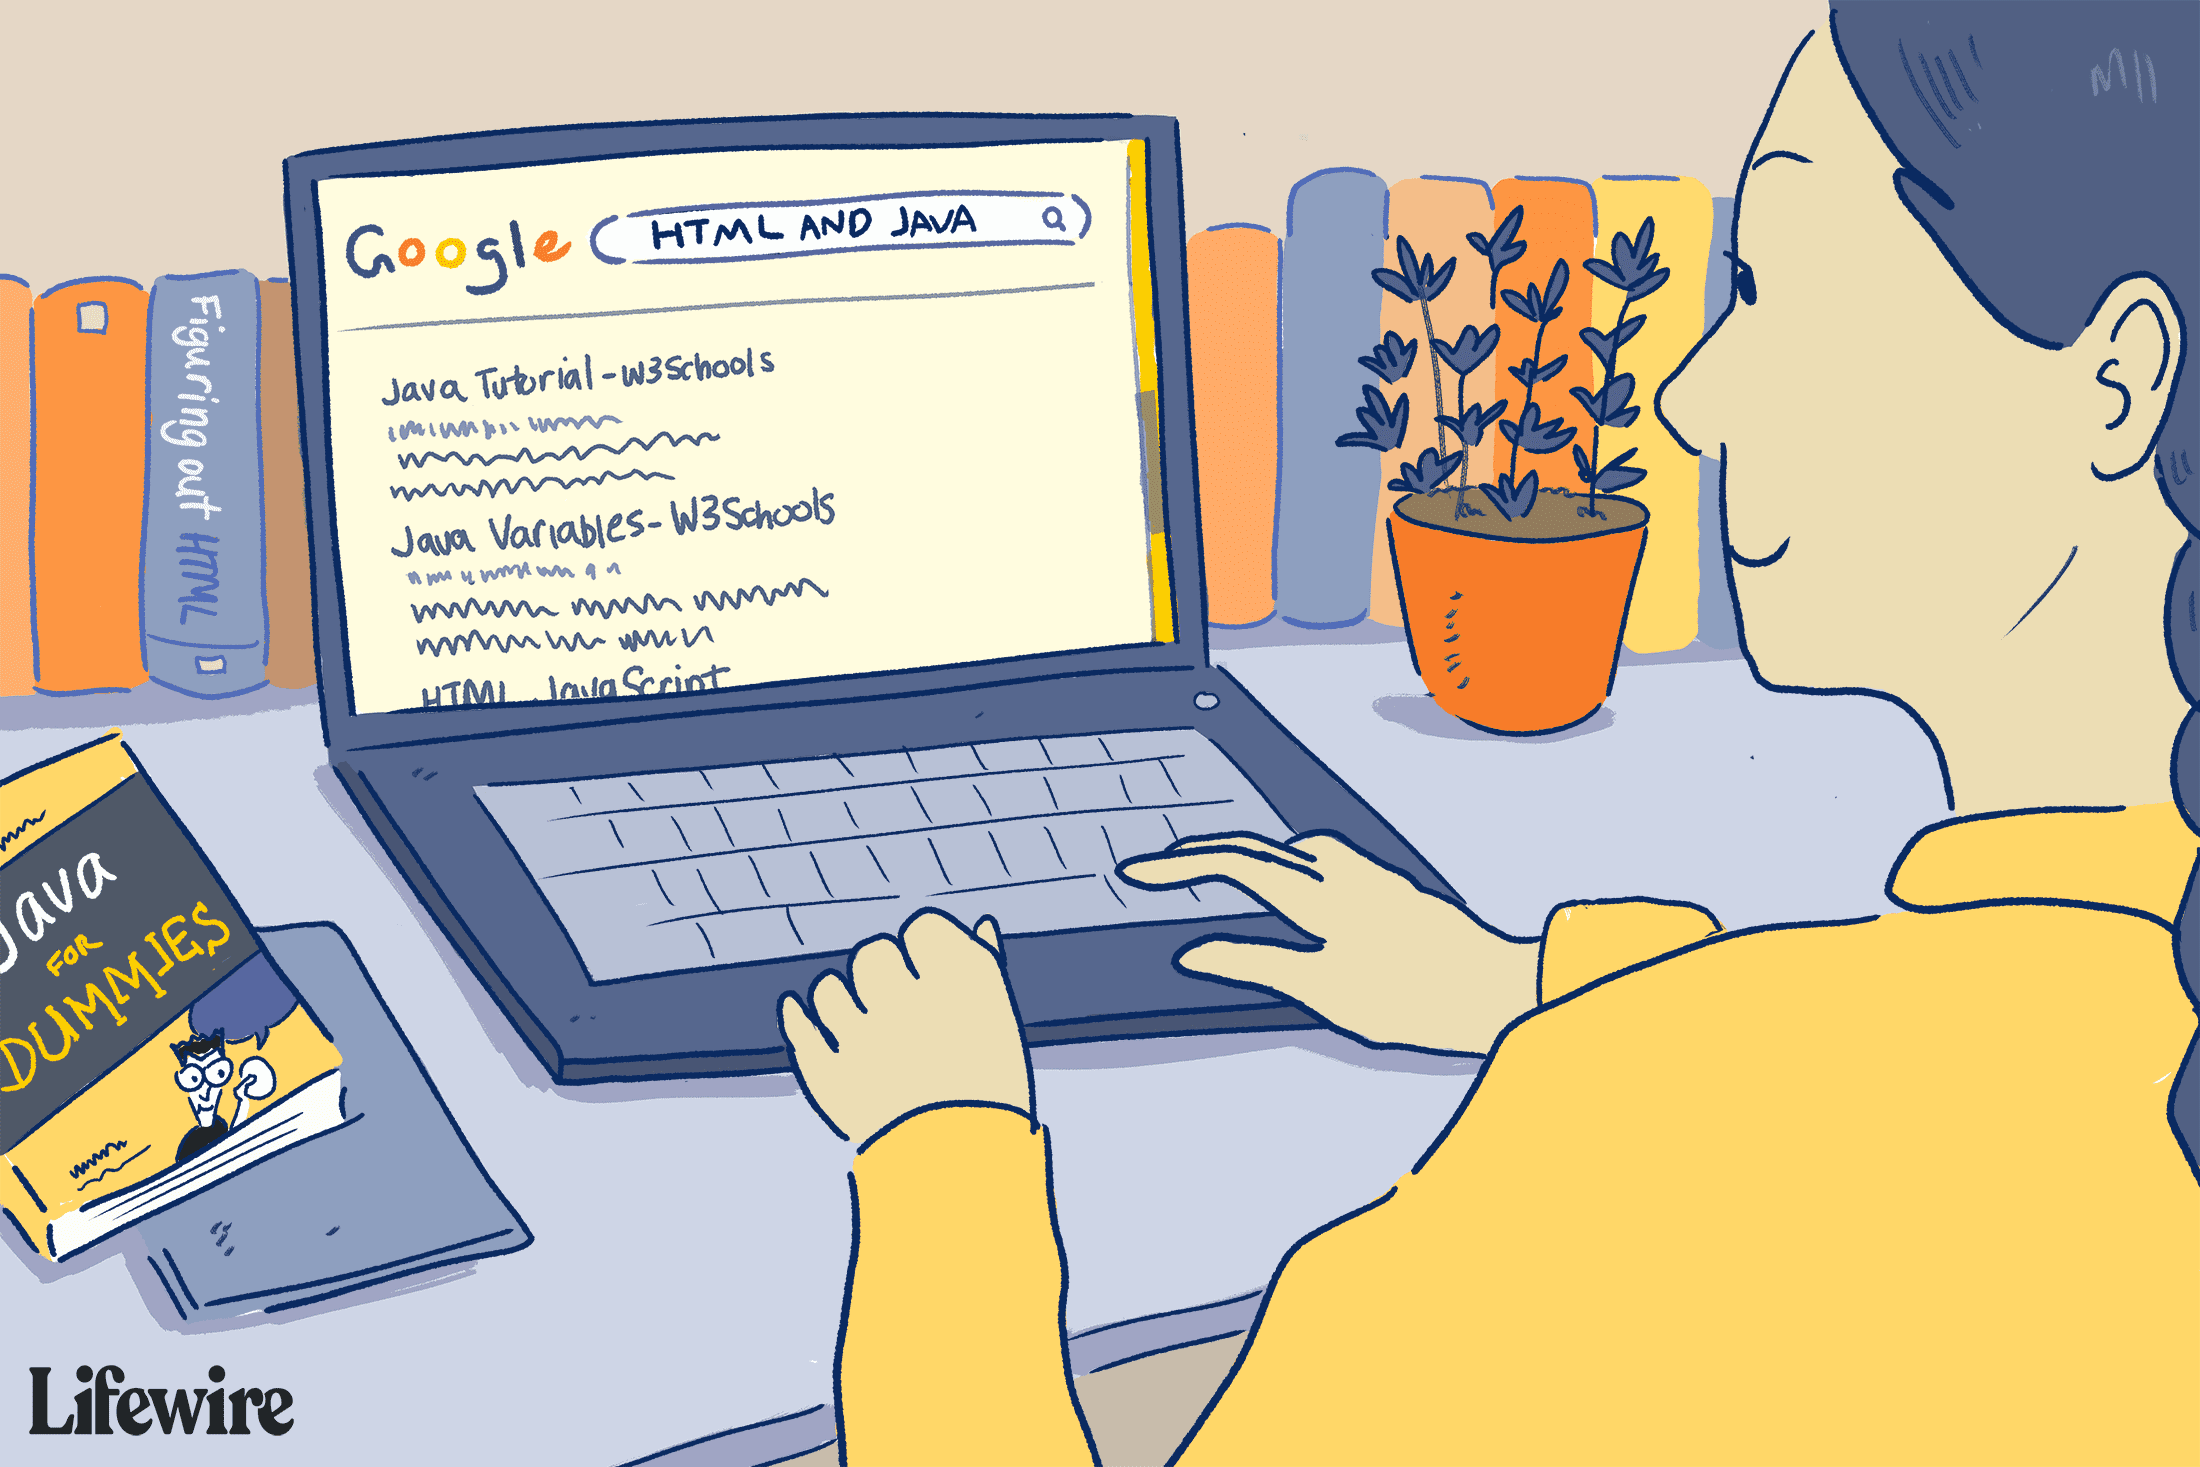 Illustration of a person doing a Boolean search for HTML and Java